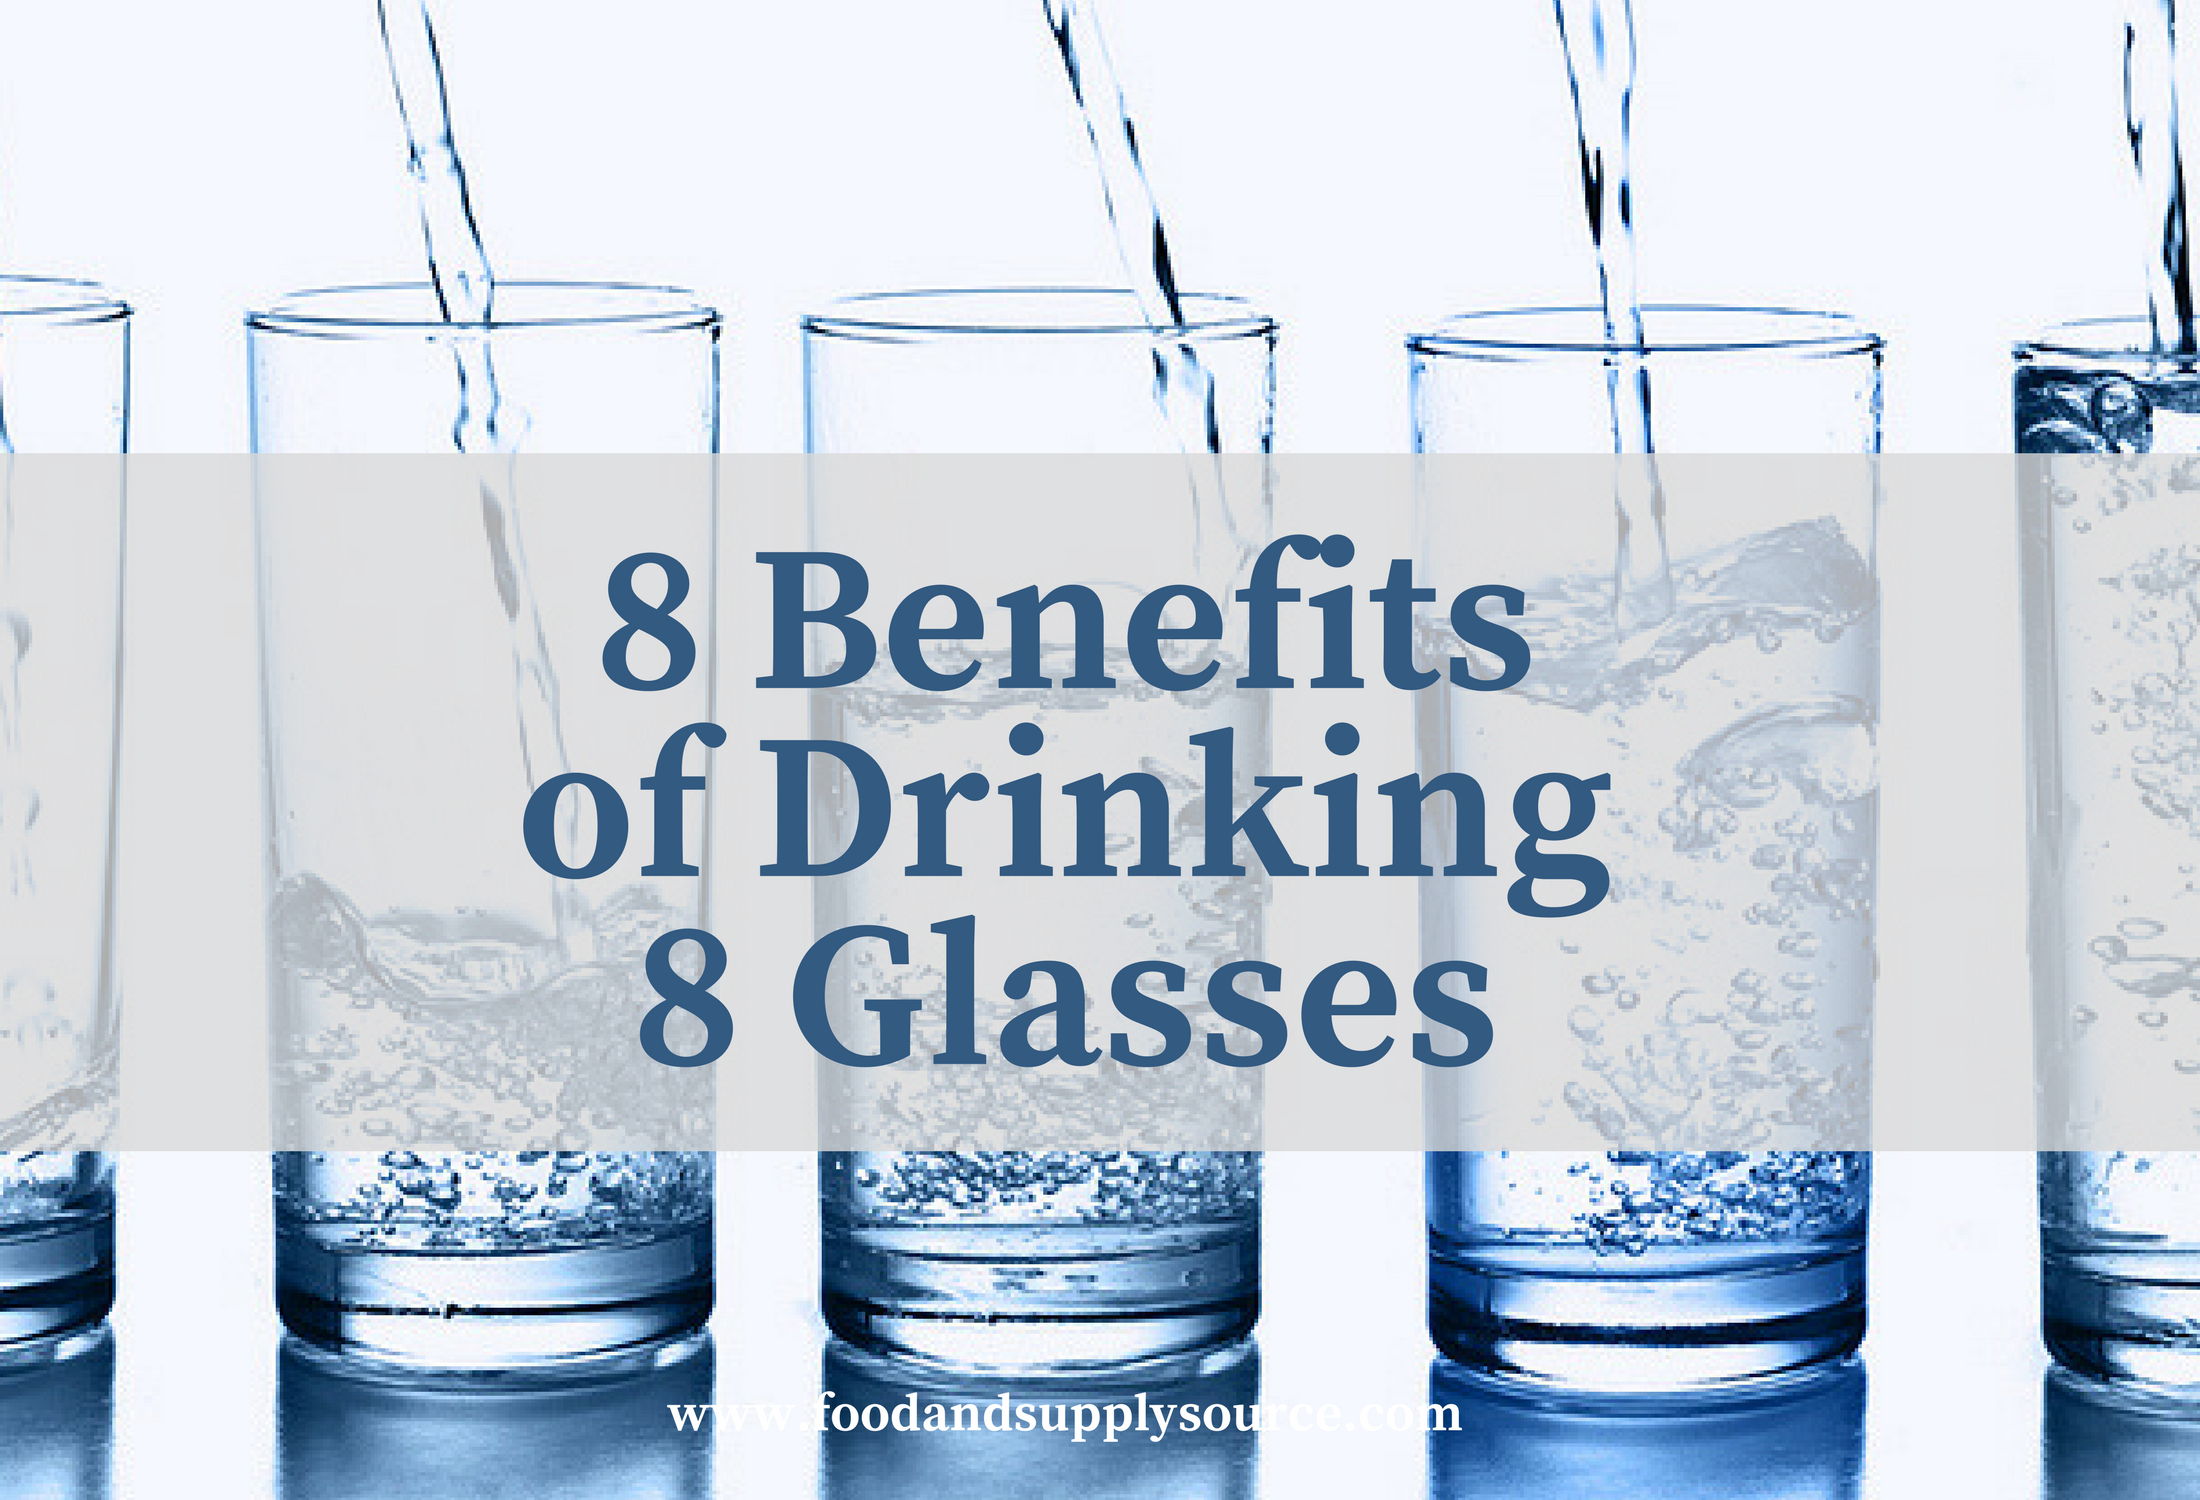 8 Benefits of Drinking 8 Glasses